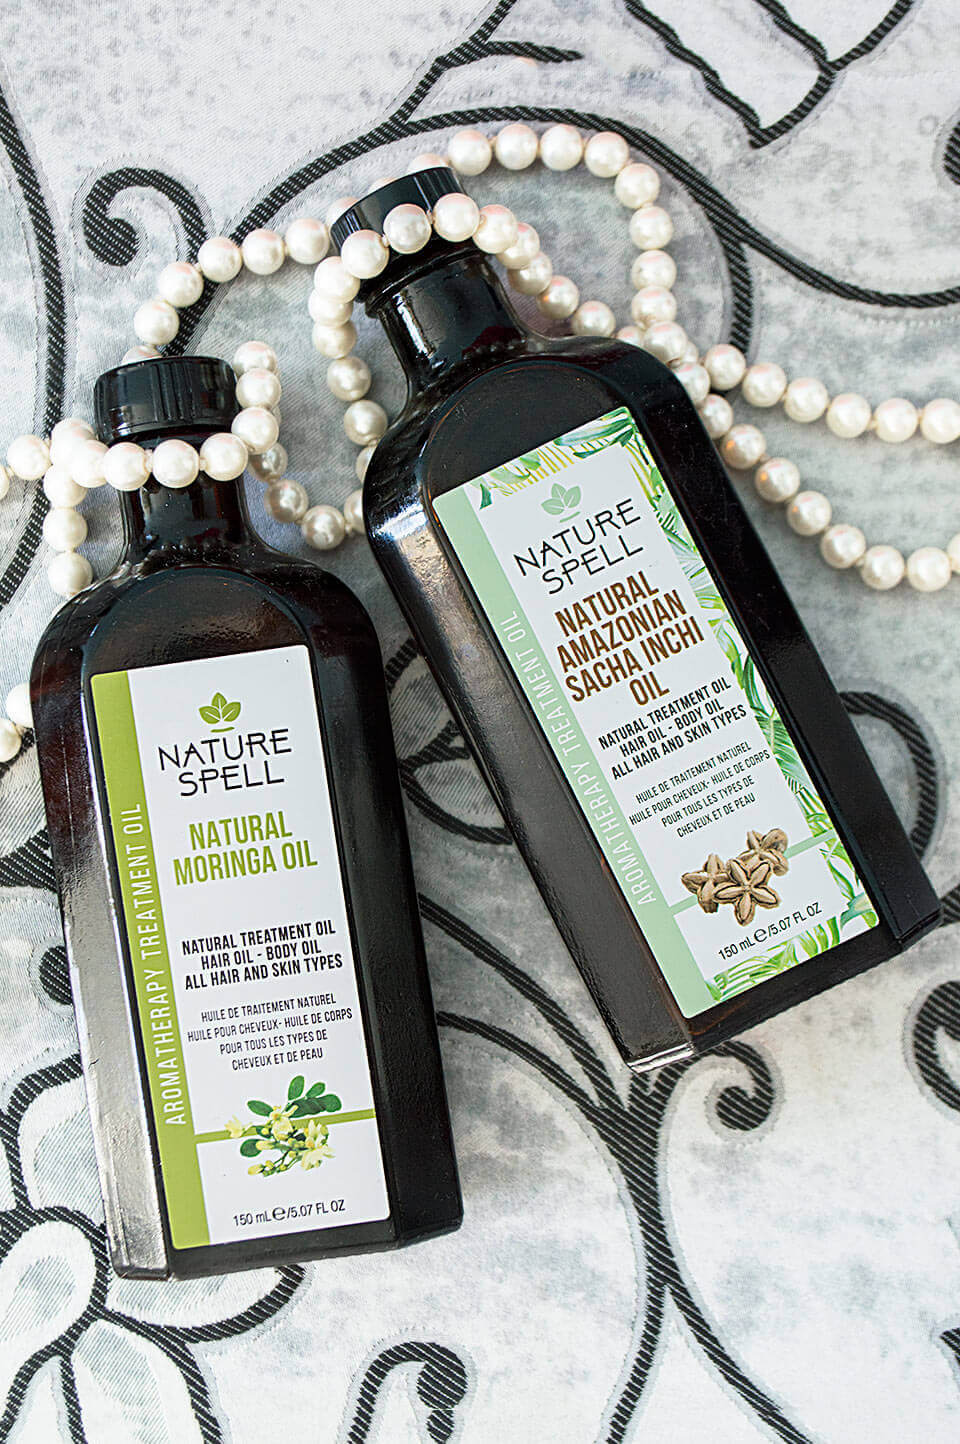 Nature Spell oil review